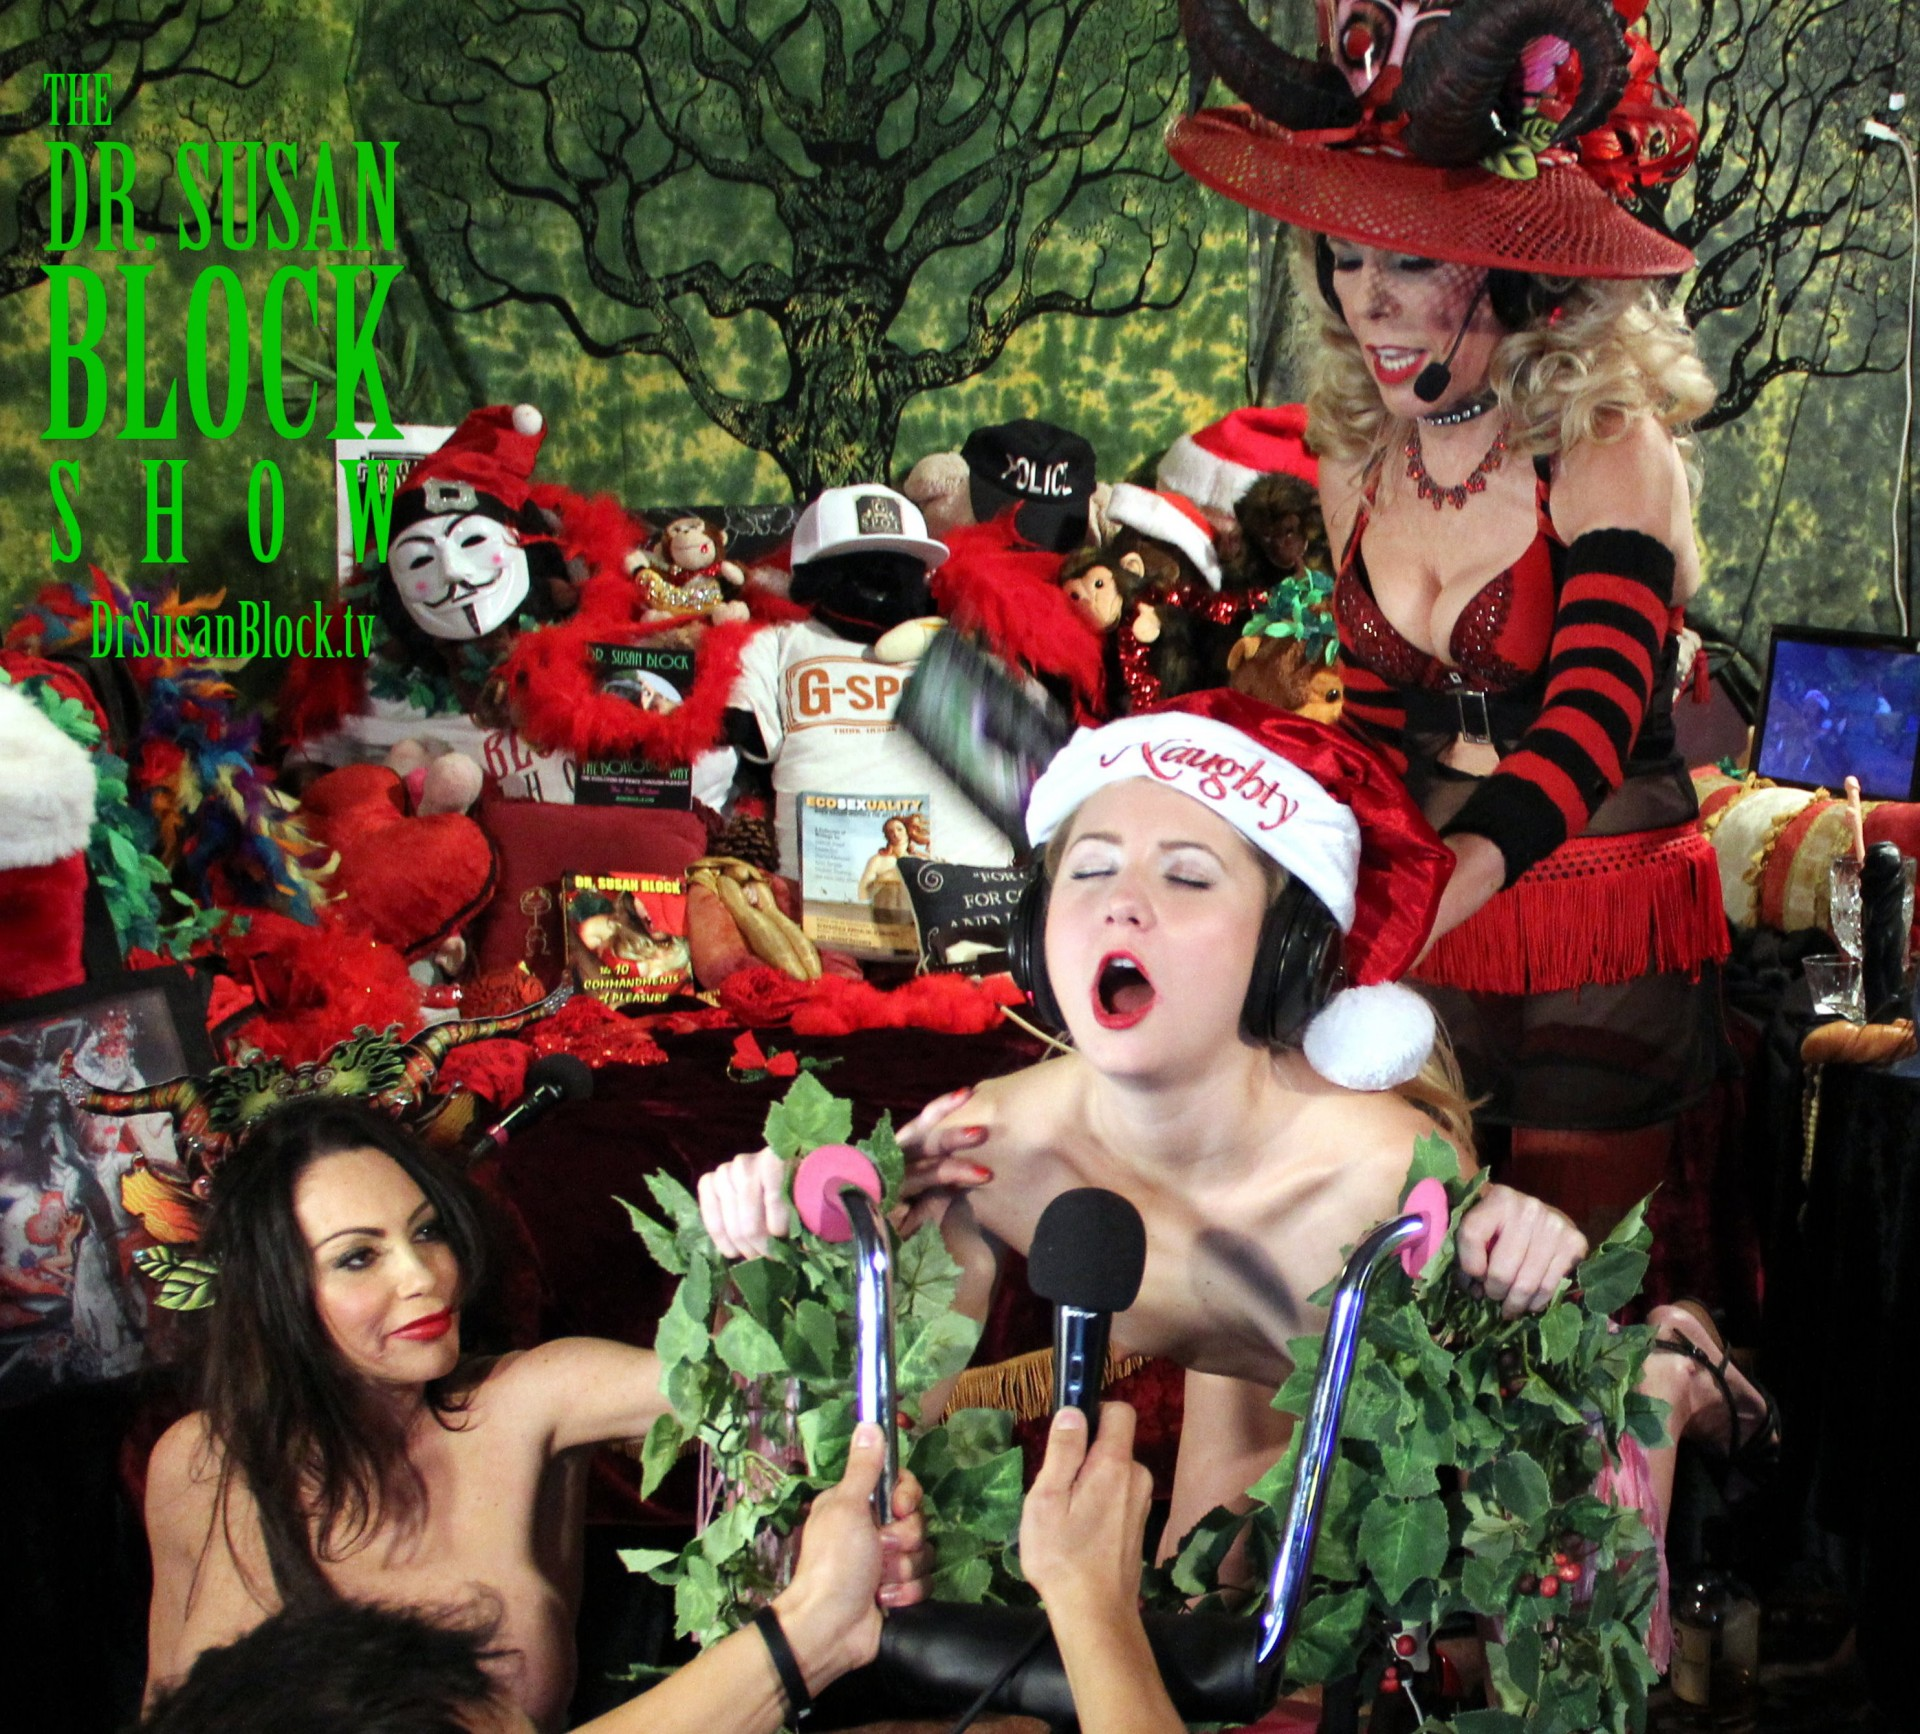 Kinky Krampus with Odette on DrSuzy.Tv